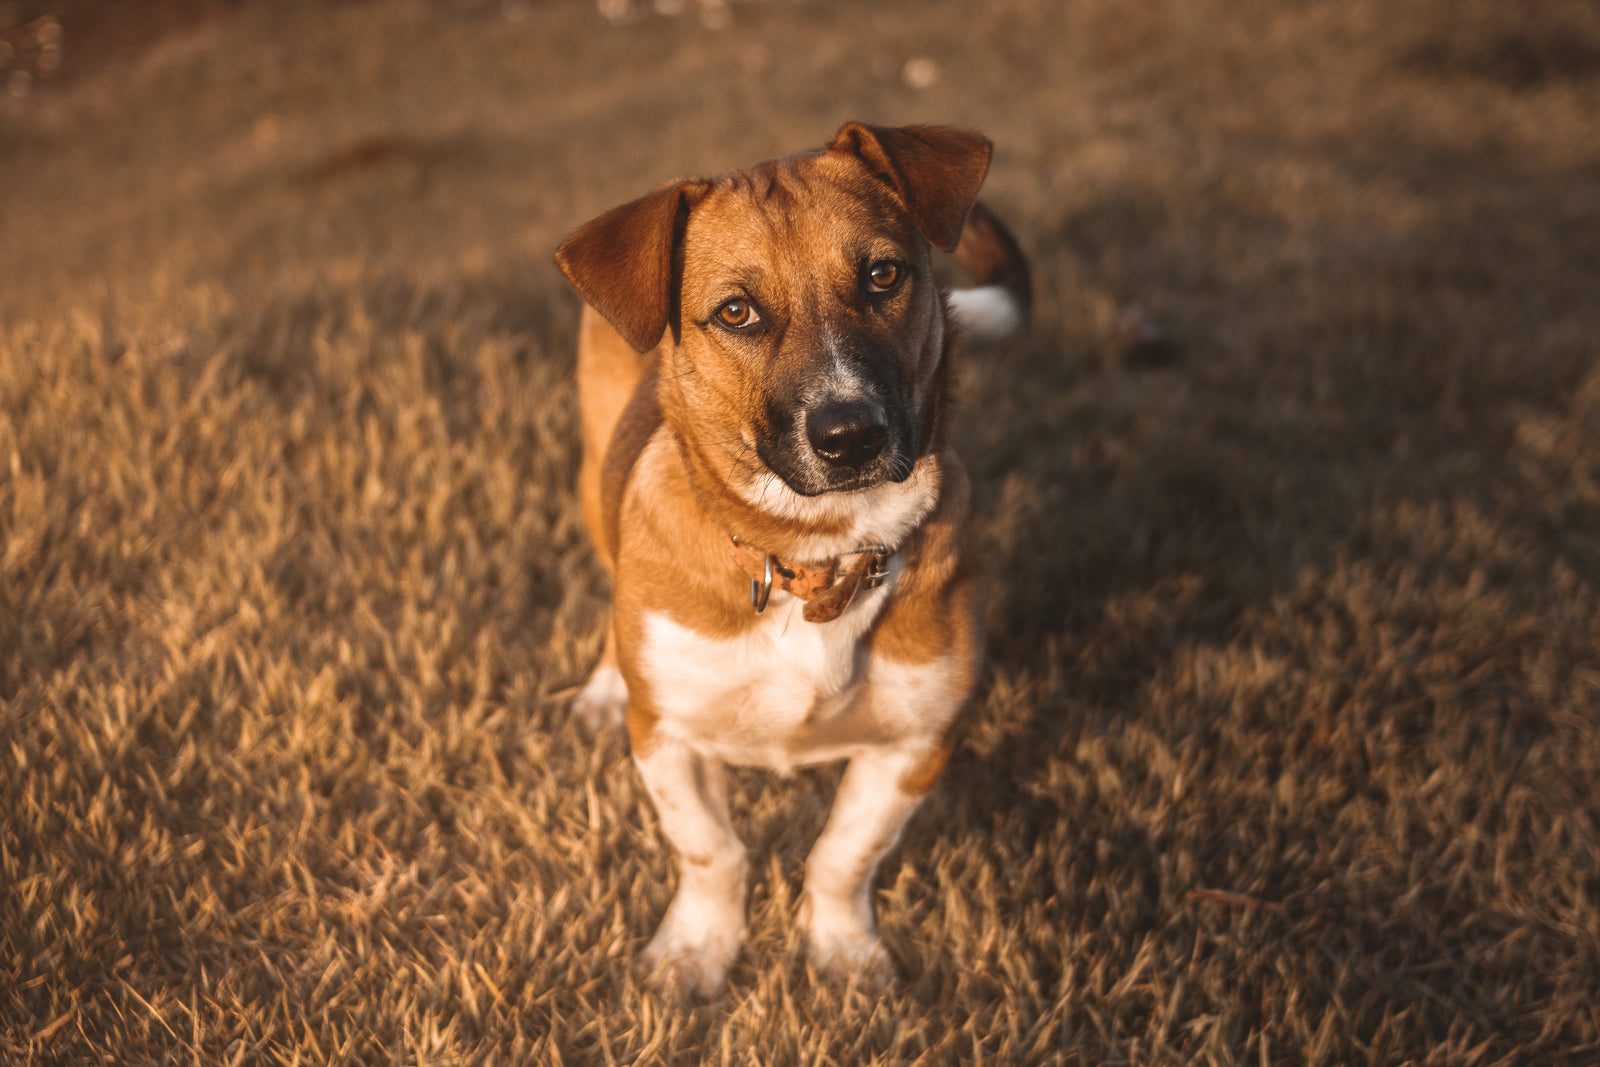 Checking Your Dog's Poop Could Save Their Life!